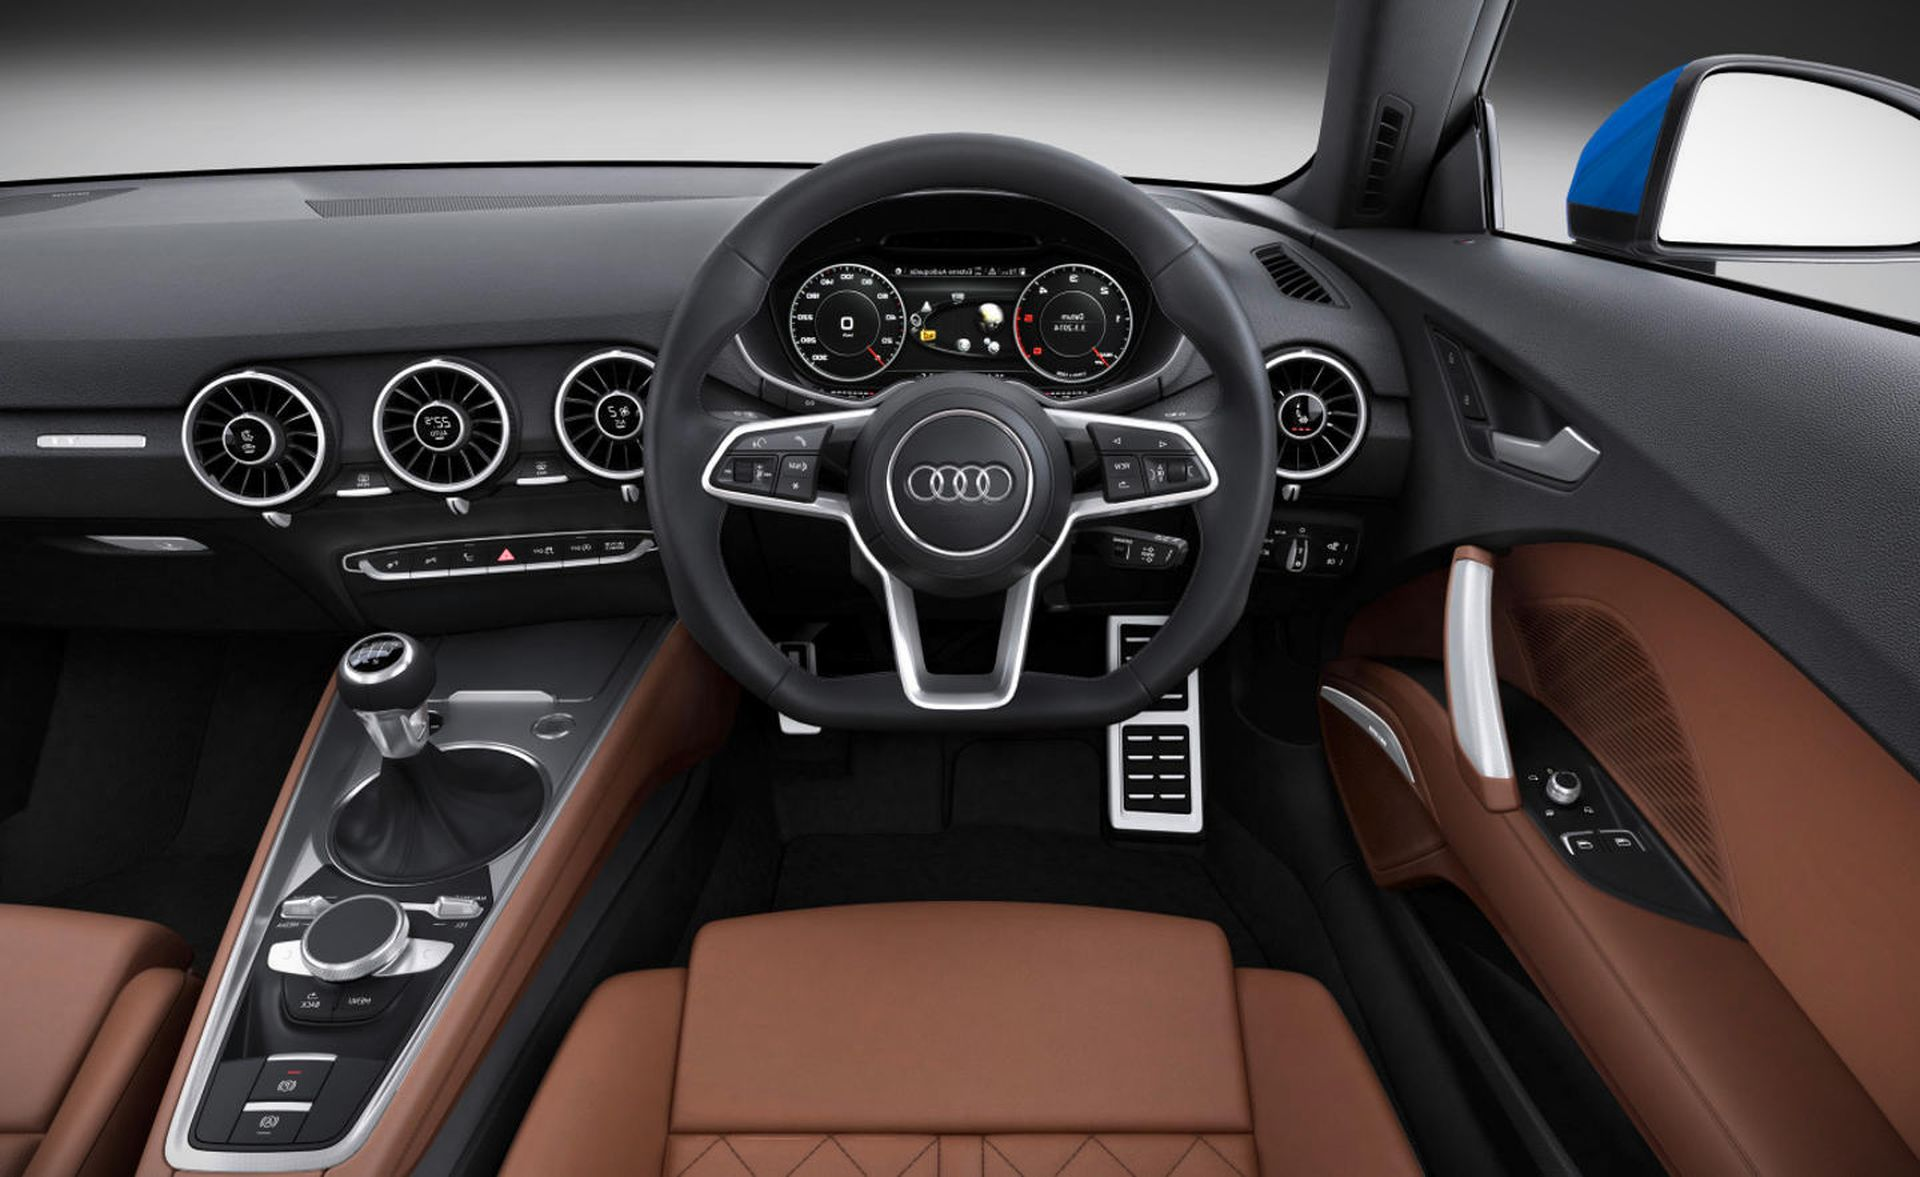 2018 Audi A1 interior changes